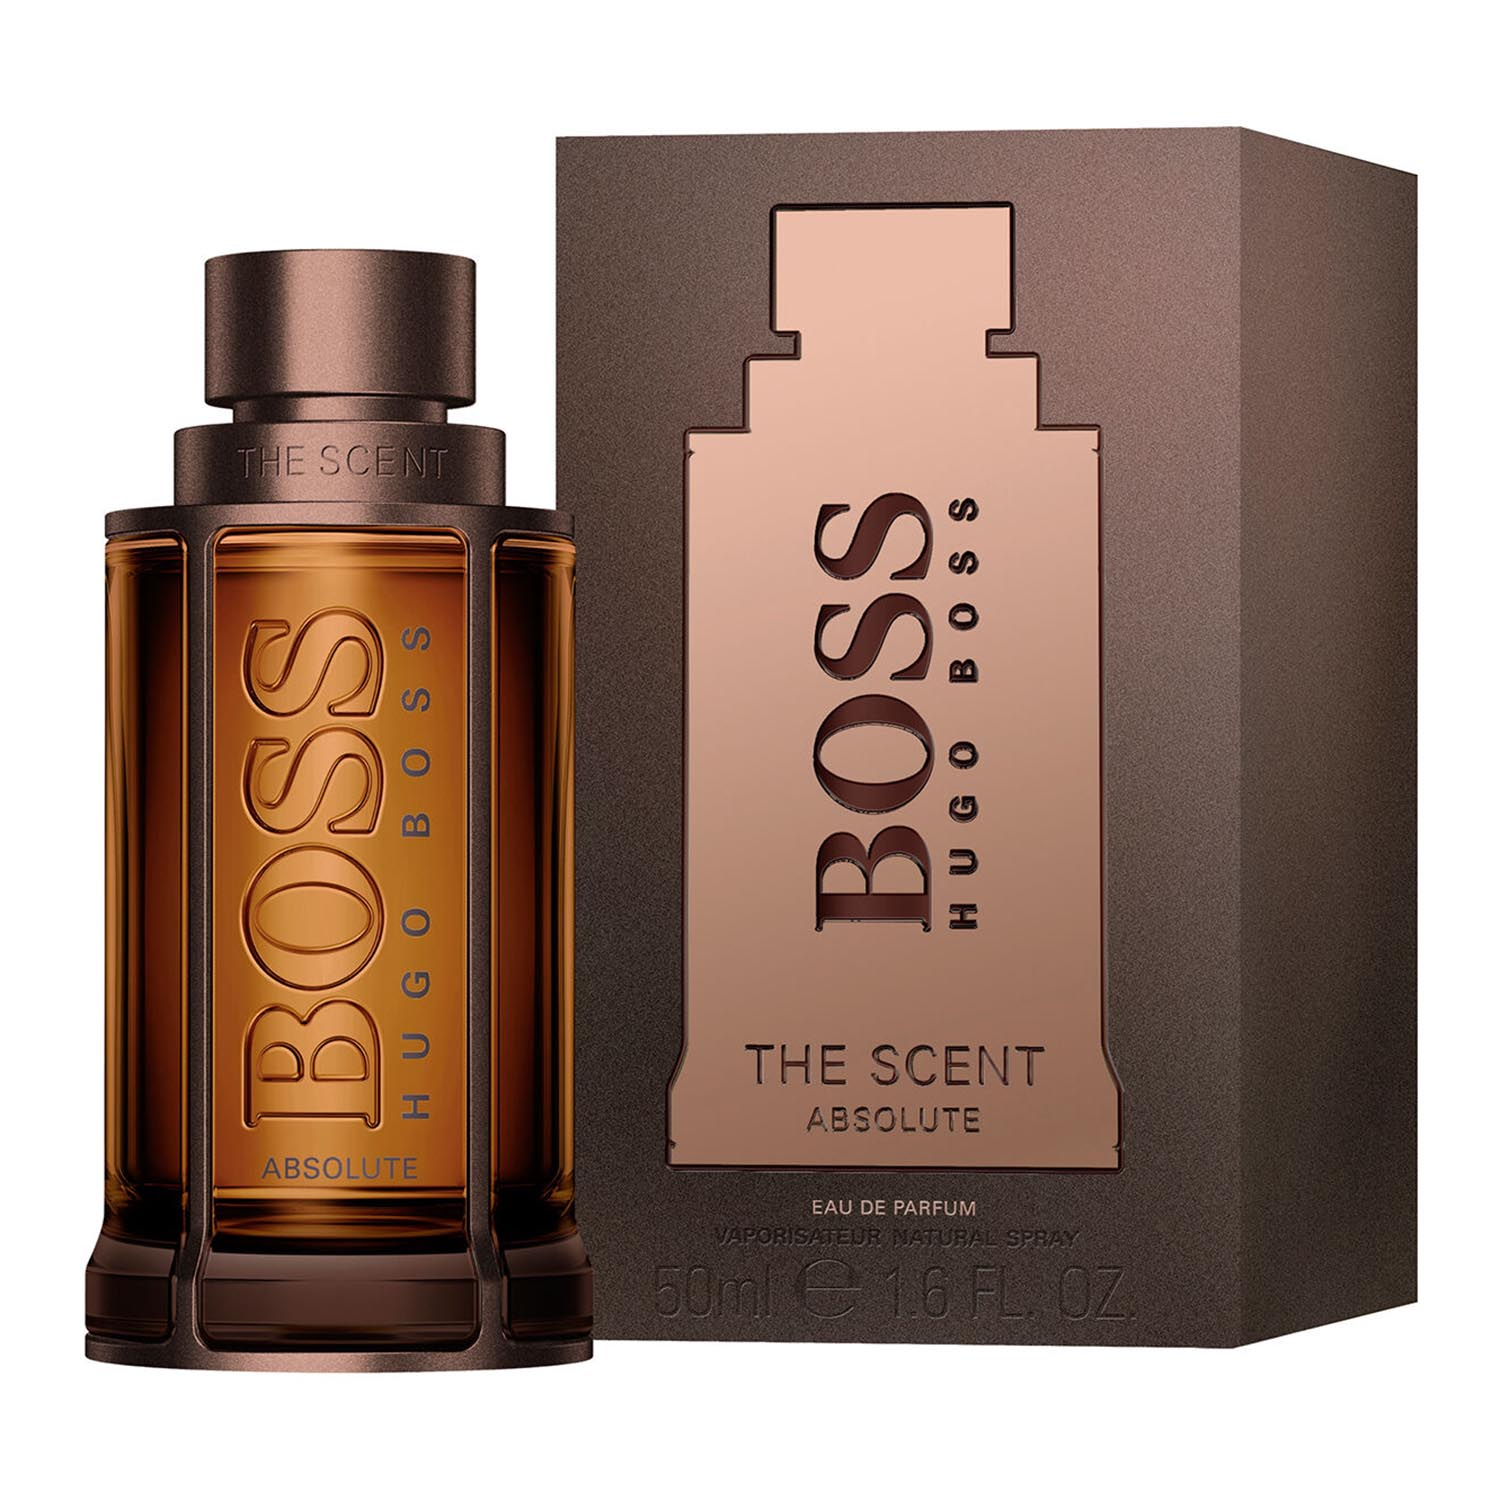 Hugo boss the scent absolute eau de parfum 50ml vaporizador